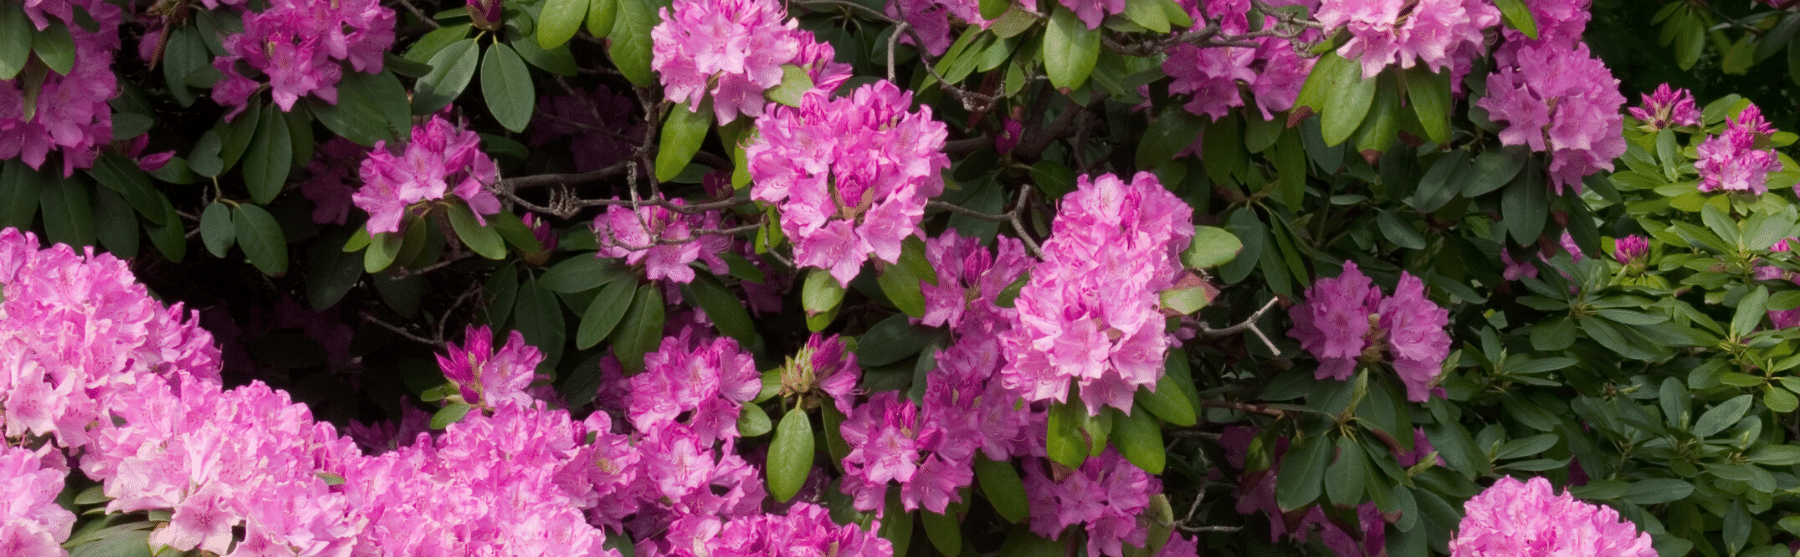 Rododendronid